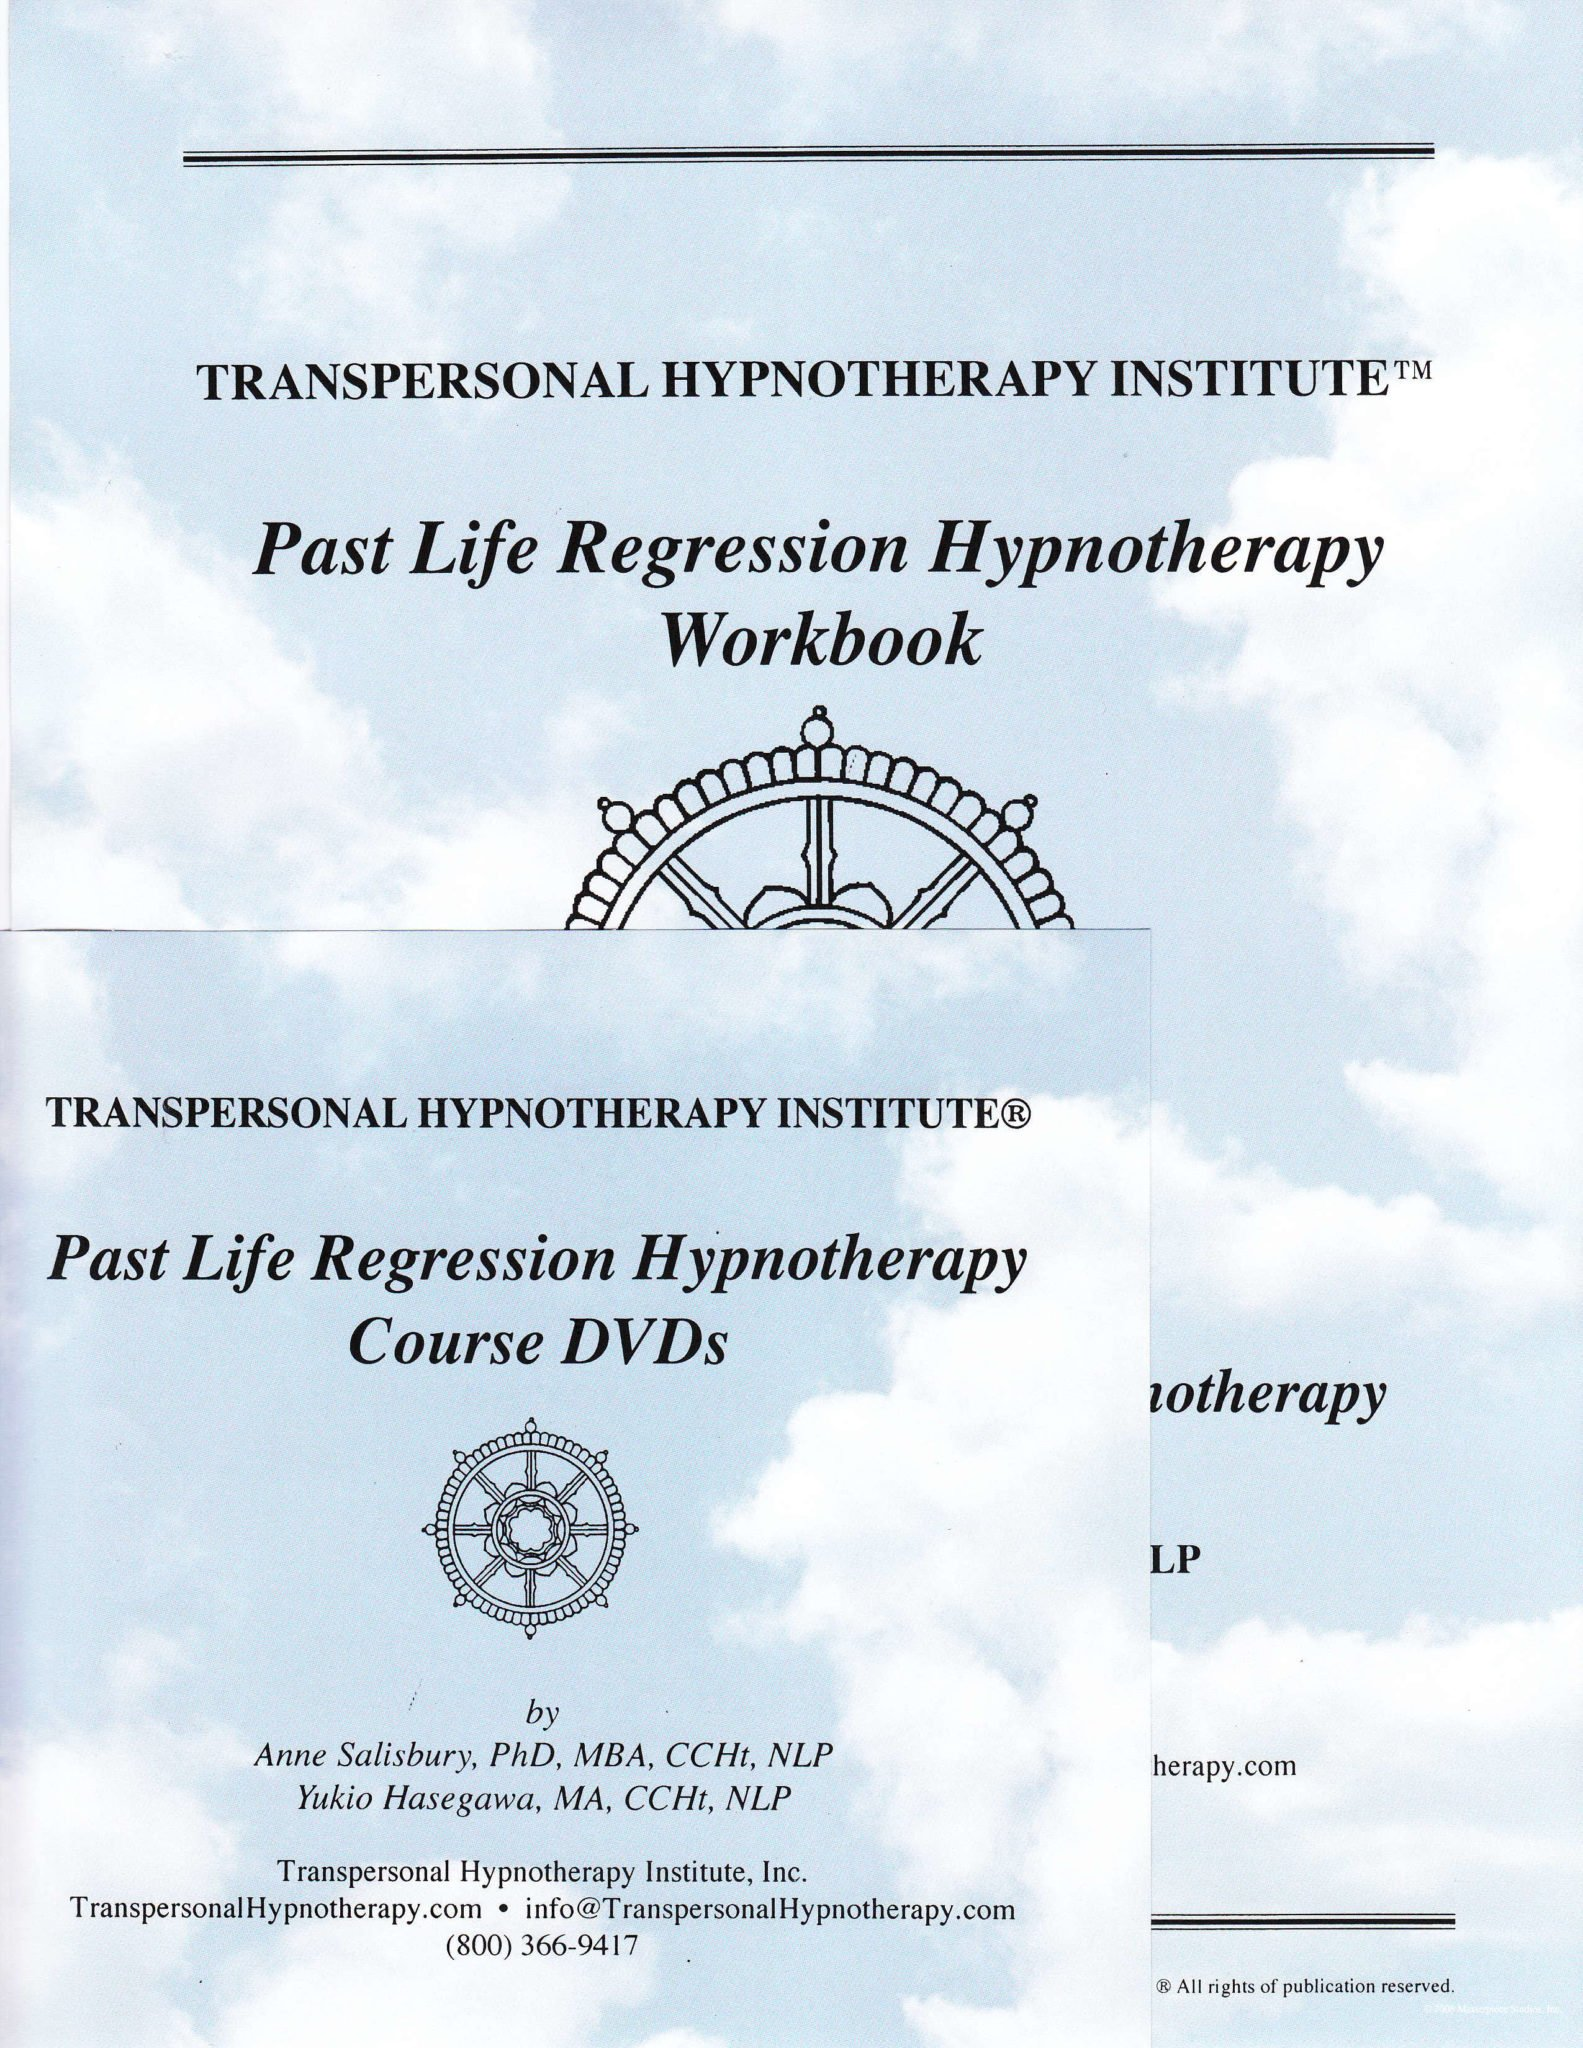 Past Life Regression Hypnotherapy Course